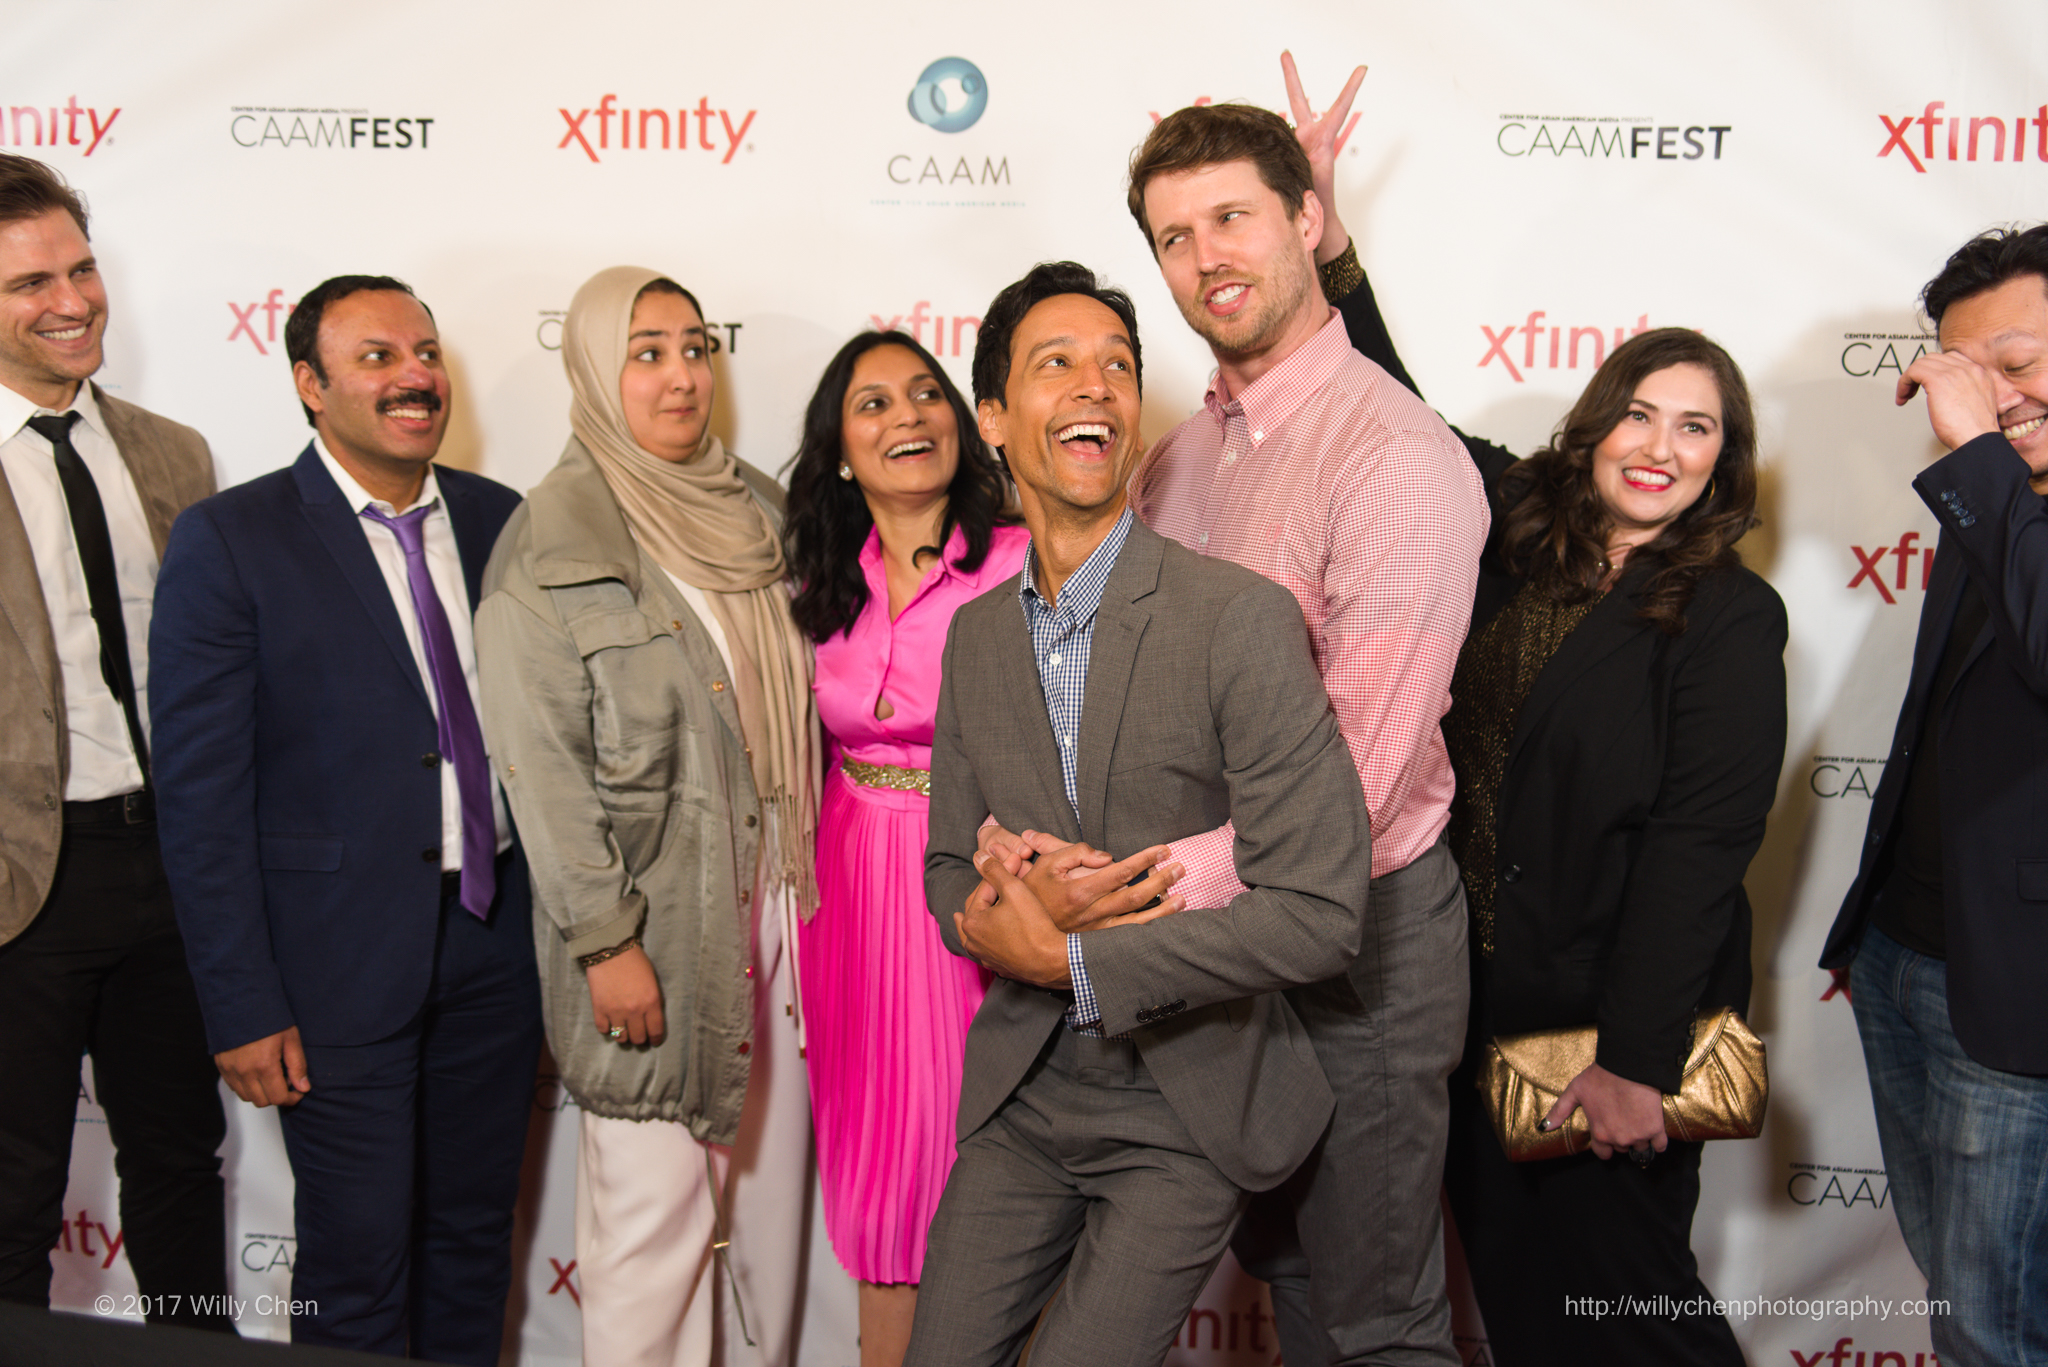 We announced CAAMFest's move to May starting in 2018 during APA Heritage Month. Photo from CAAMFest 2017 Opening Night, by Willy Chen.